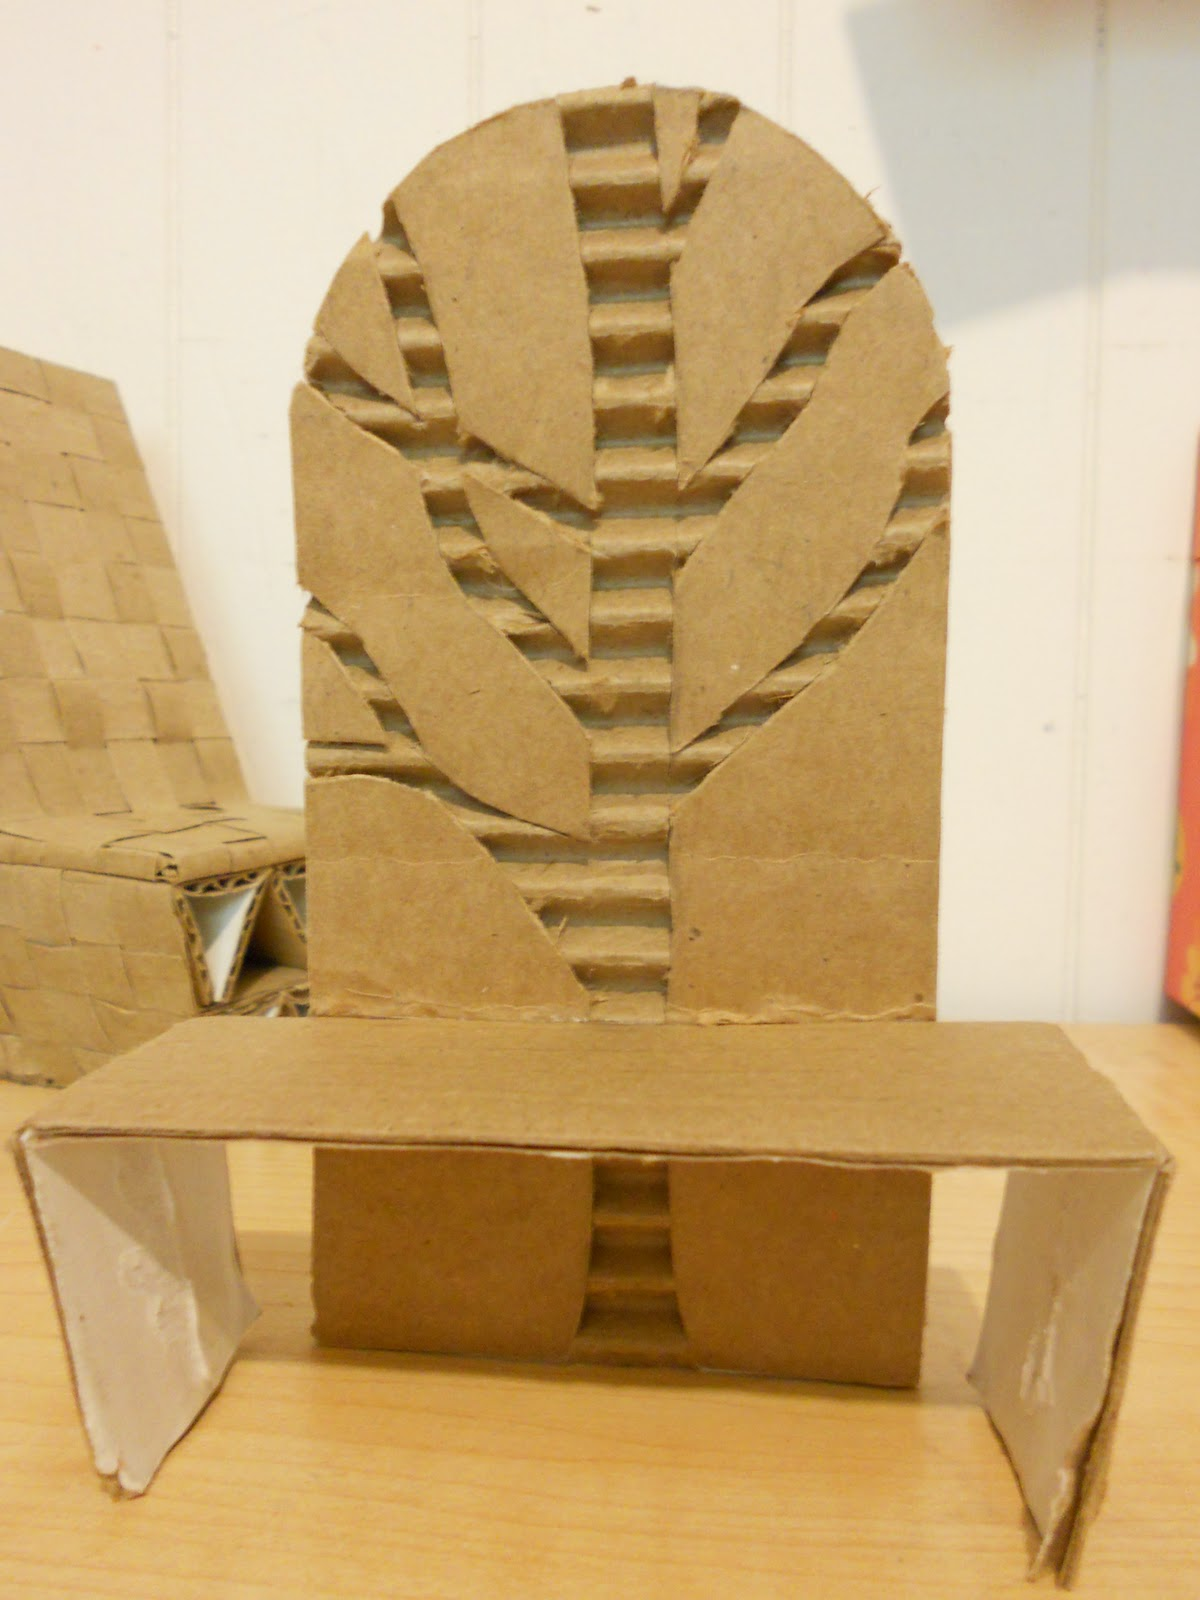 I Love To Construct And The First Project For My INTD25 Class Was Create Build A Chair Out Of Cardboard At Worried But Once We Started